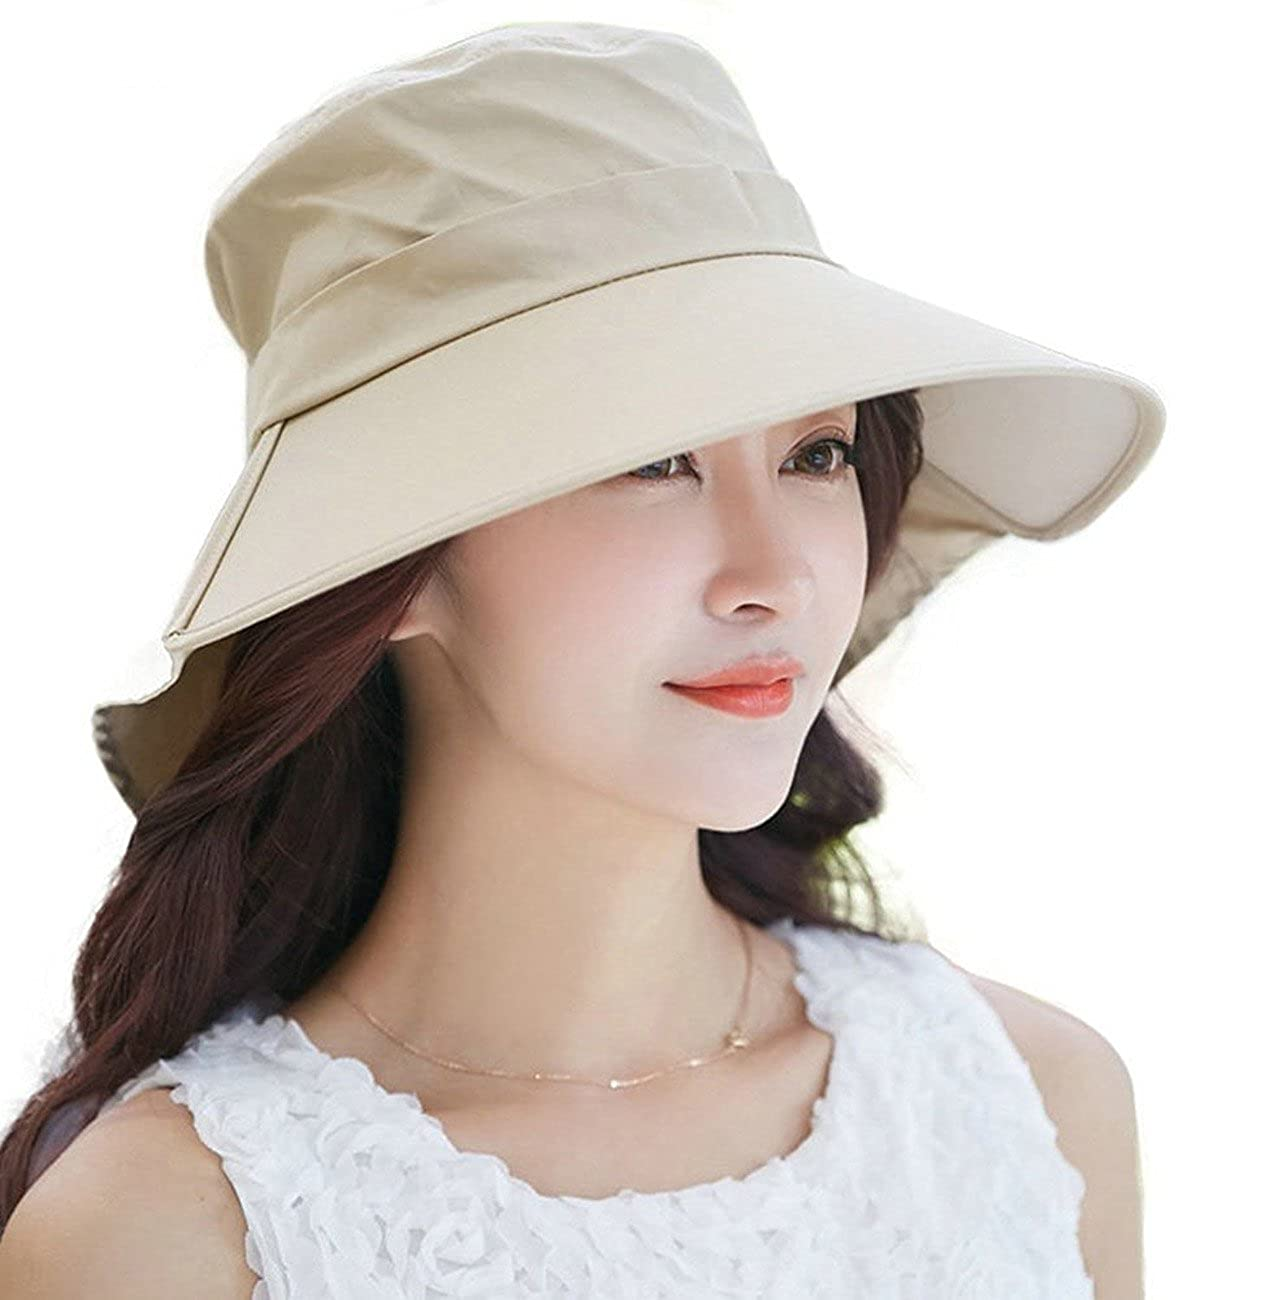 34d01b6d1a71a6 HINDAWI Sun Hat Wide Brim Sun Hats for Women UV Protection Floppy Beach  Womens Summer Flap Cover Cap Beige at Amazon Women's Clothing store: